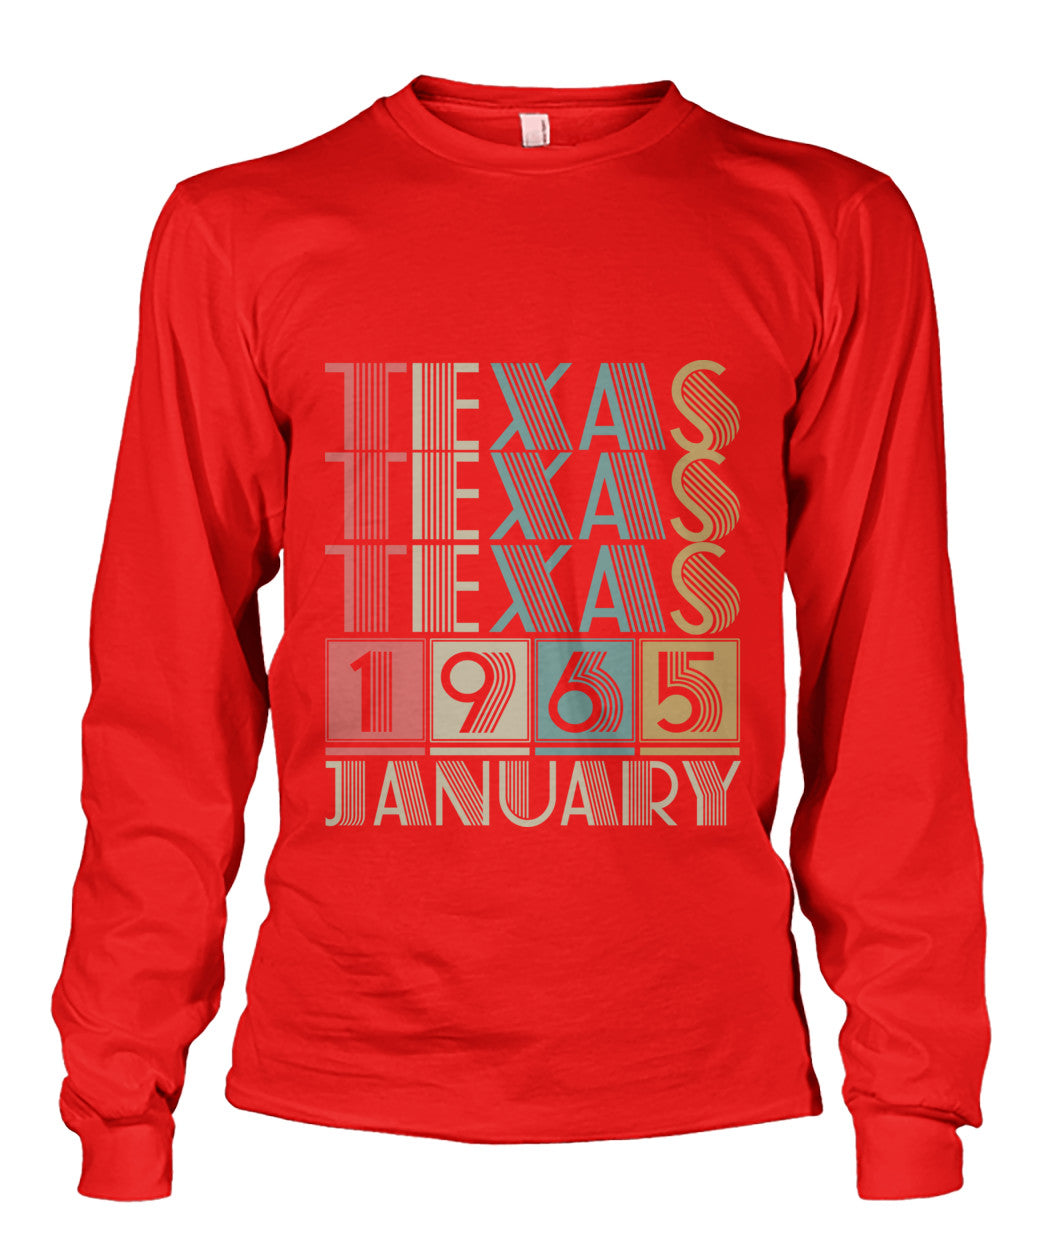 Born in Texas in January 1965 t shirt-Short Sleeves - TEEHOT.COM